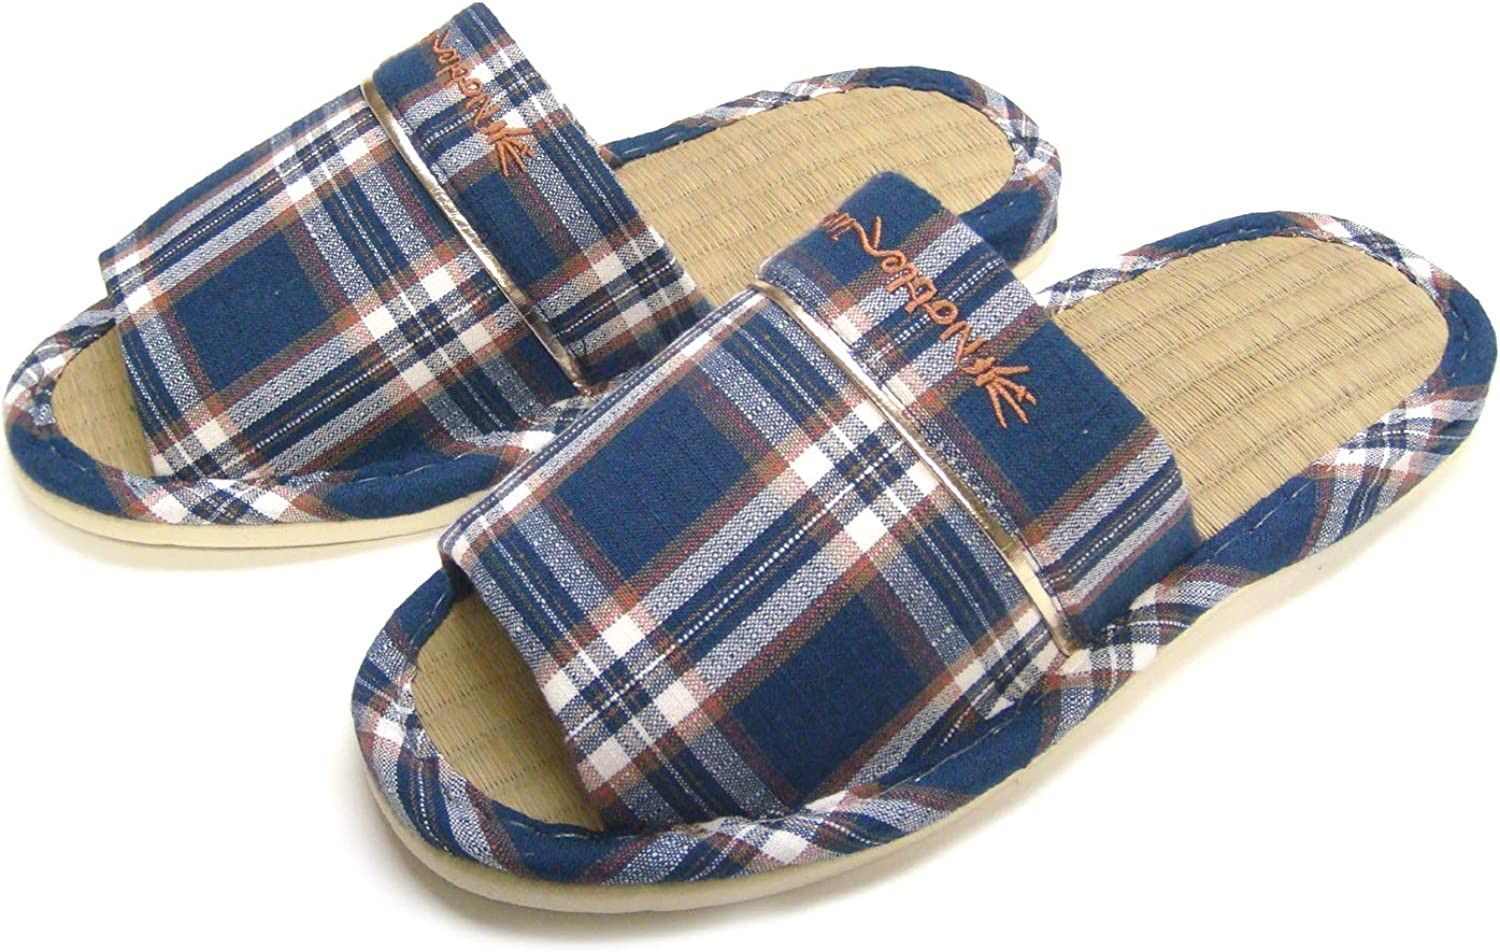 KNP26019T/ Men Wide Width Open-Toe Natural Bamboo House Slippers